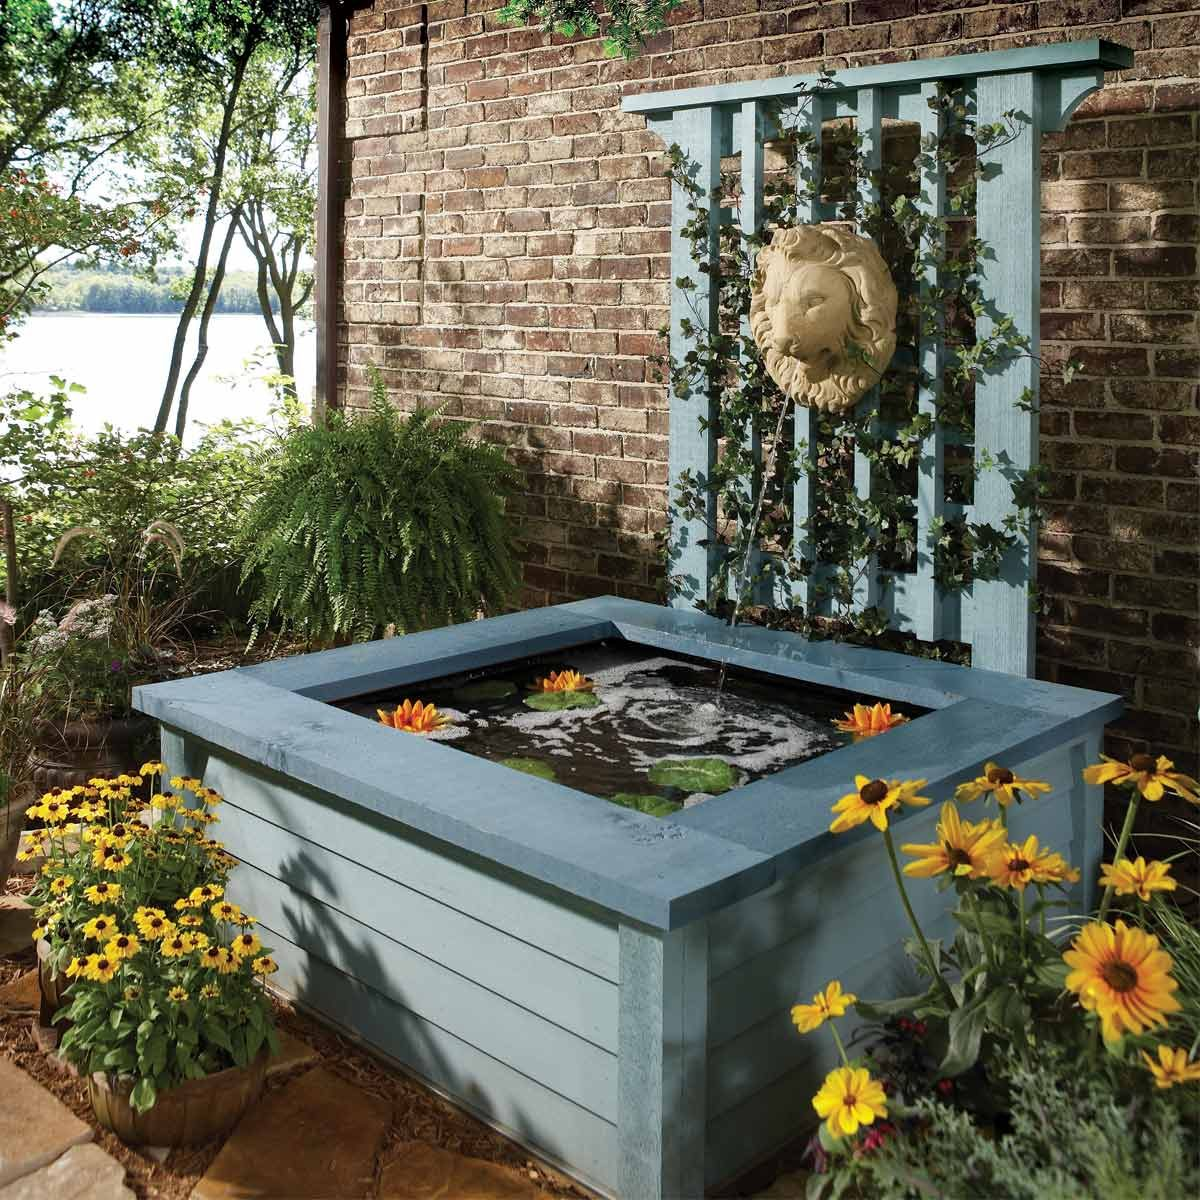 Outdoor Pond Ideas: Pond in a Box on Yard Ponds Ideas id=67029